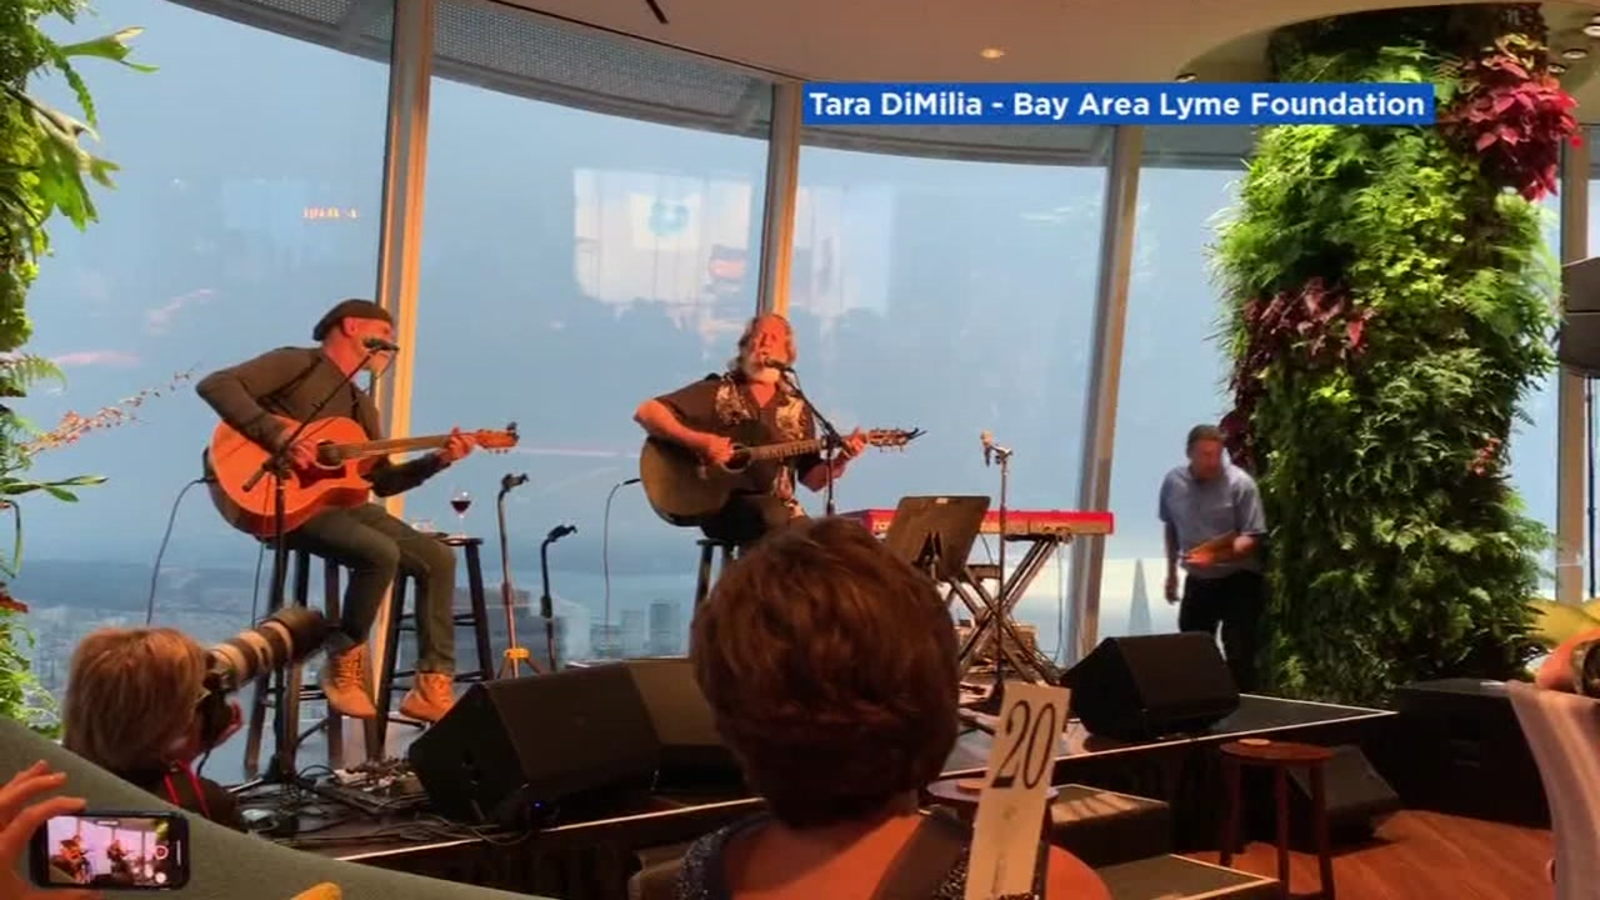 Event held in SF to raise awareness about Lyme disease